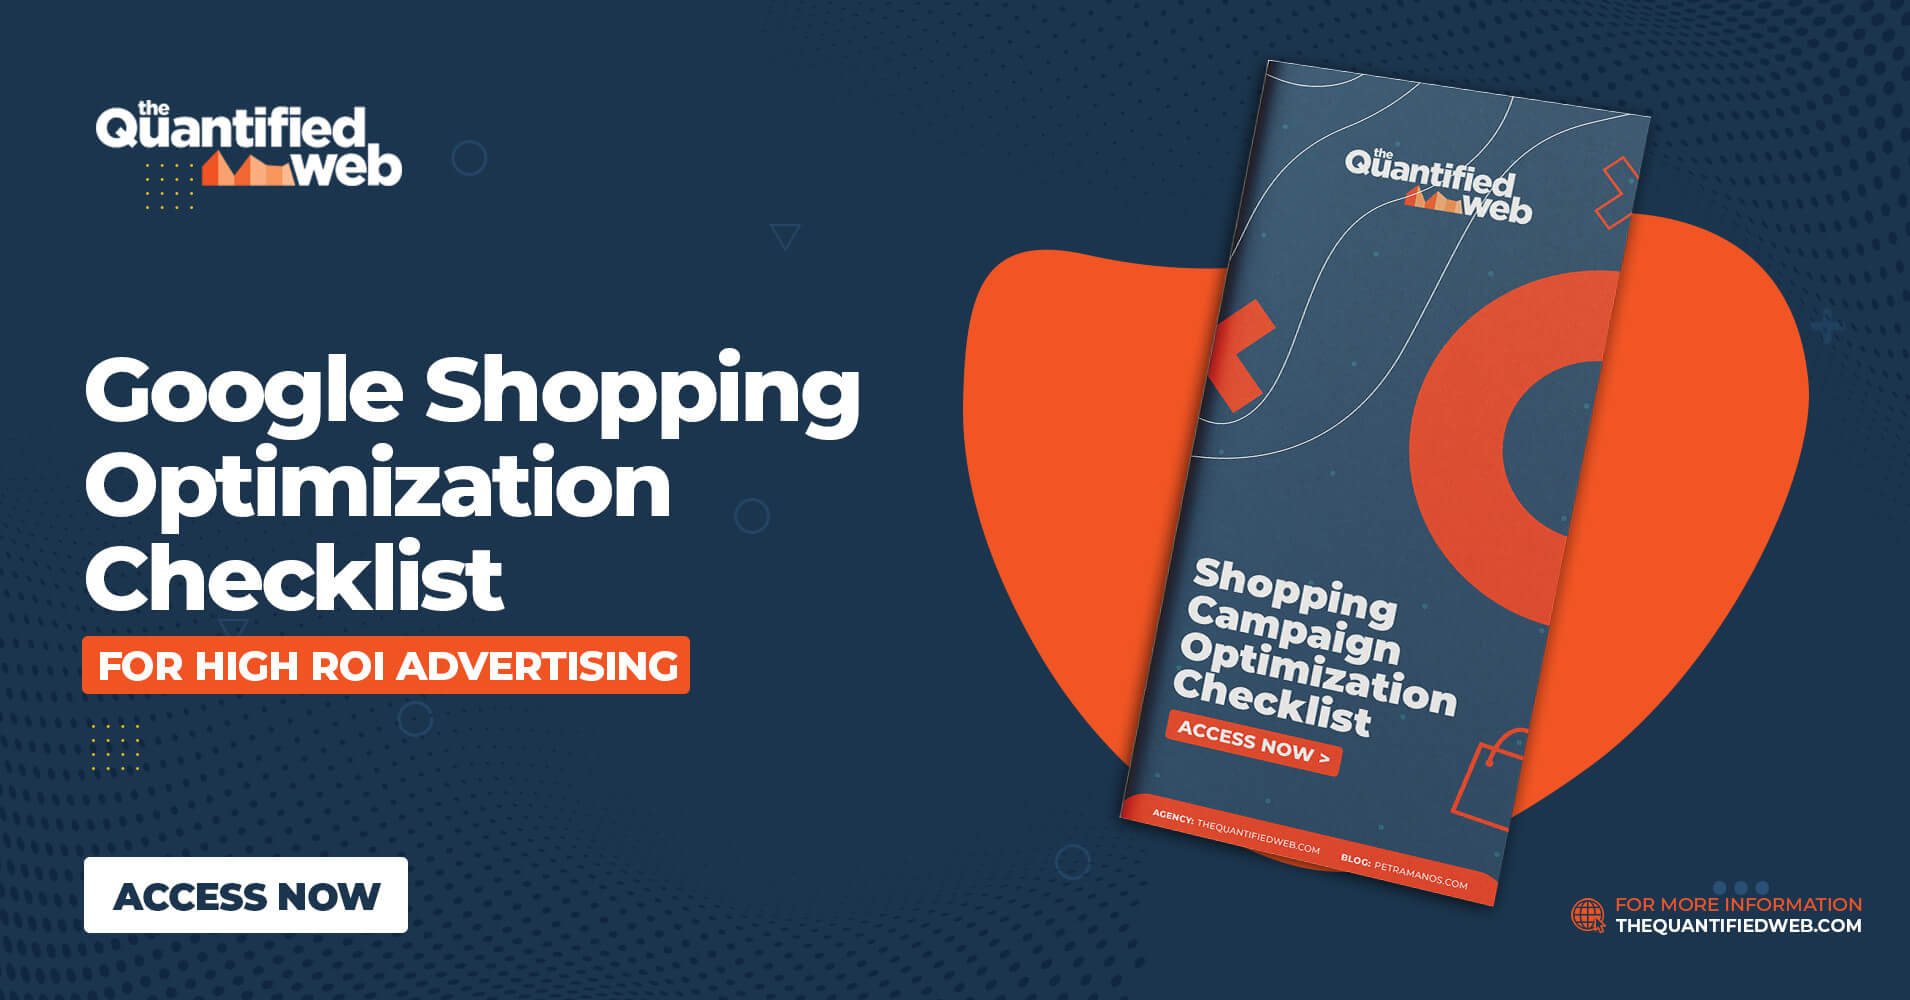 Google Shopping Optimization Checklist